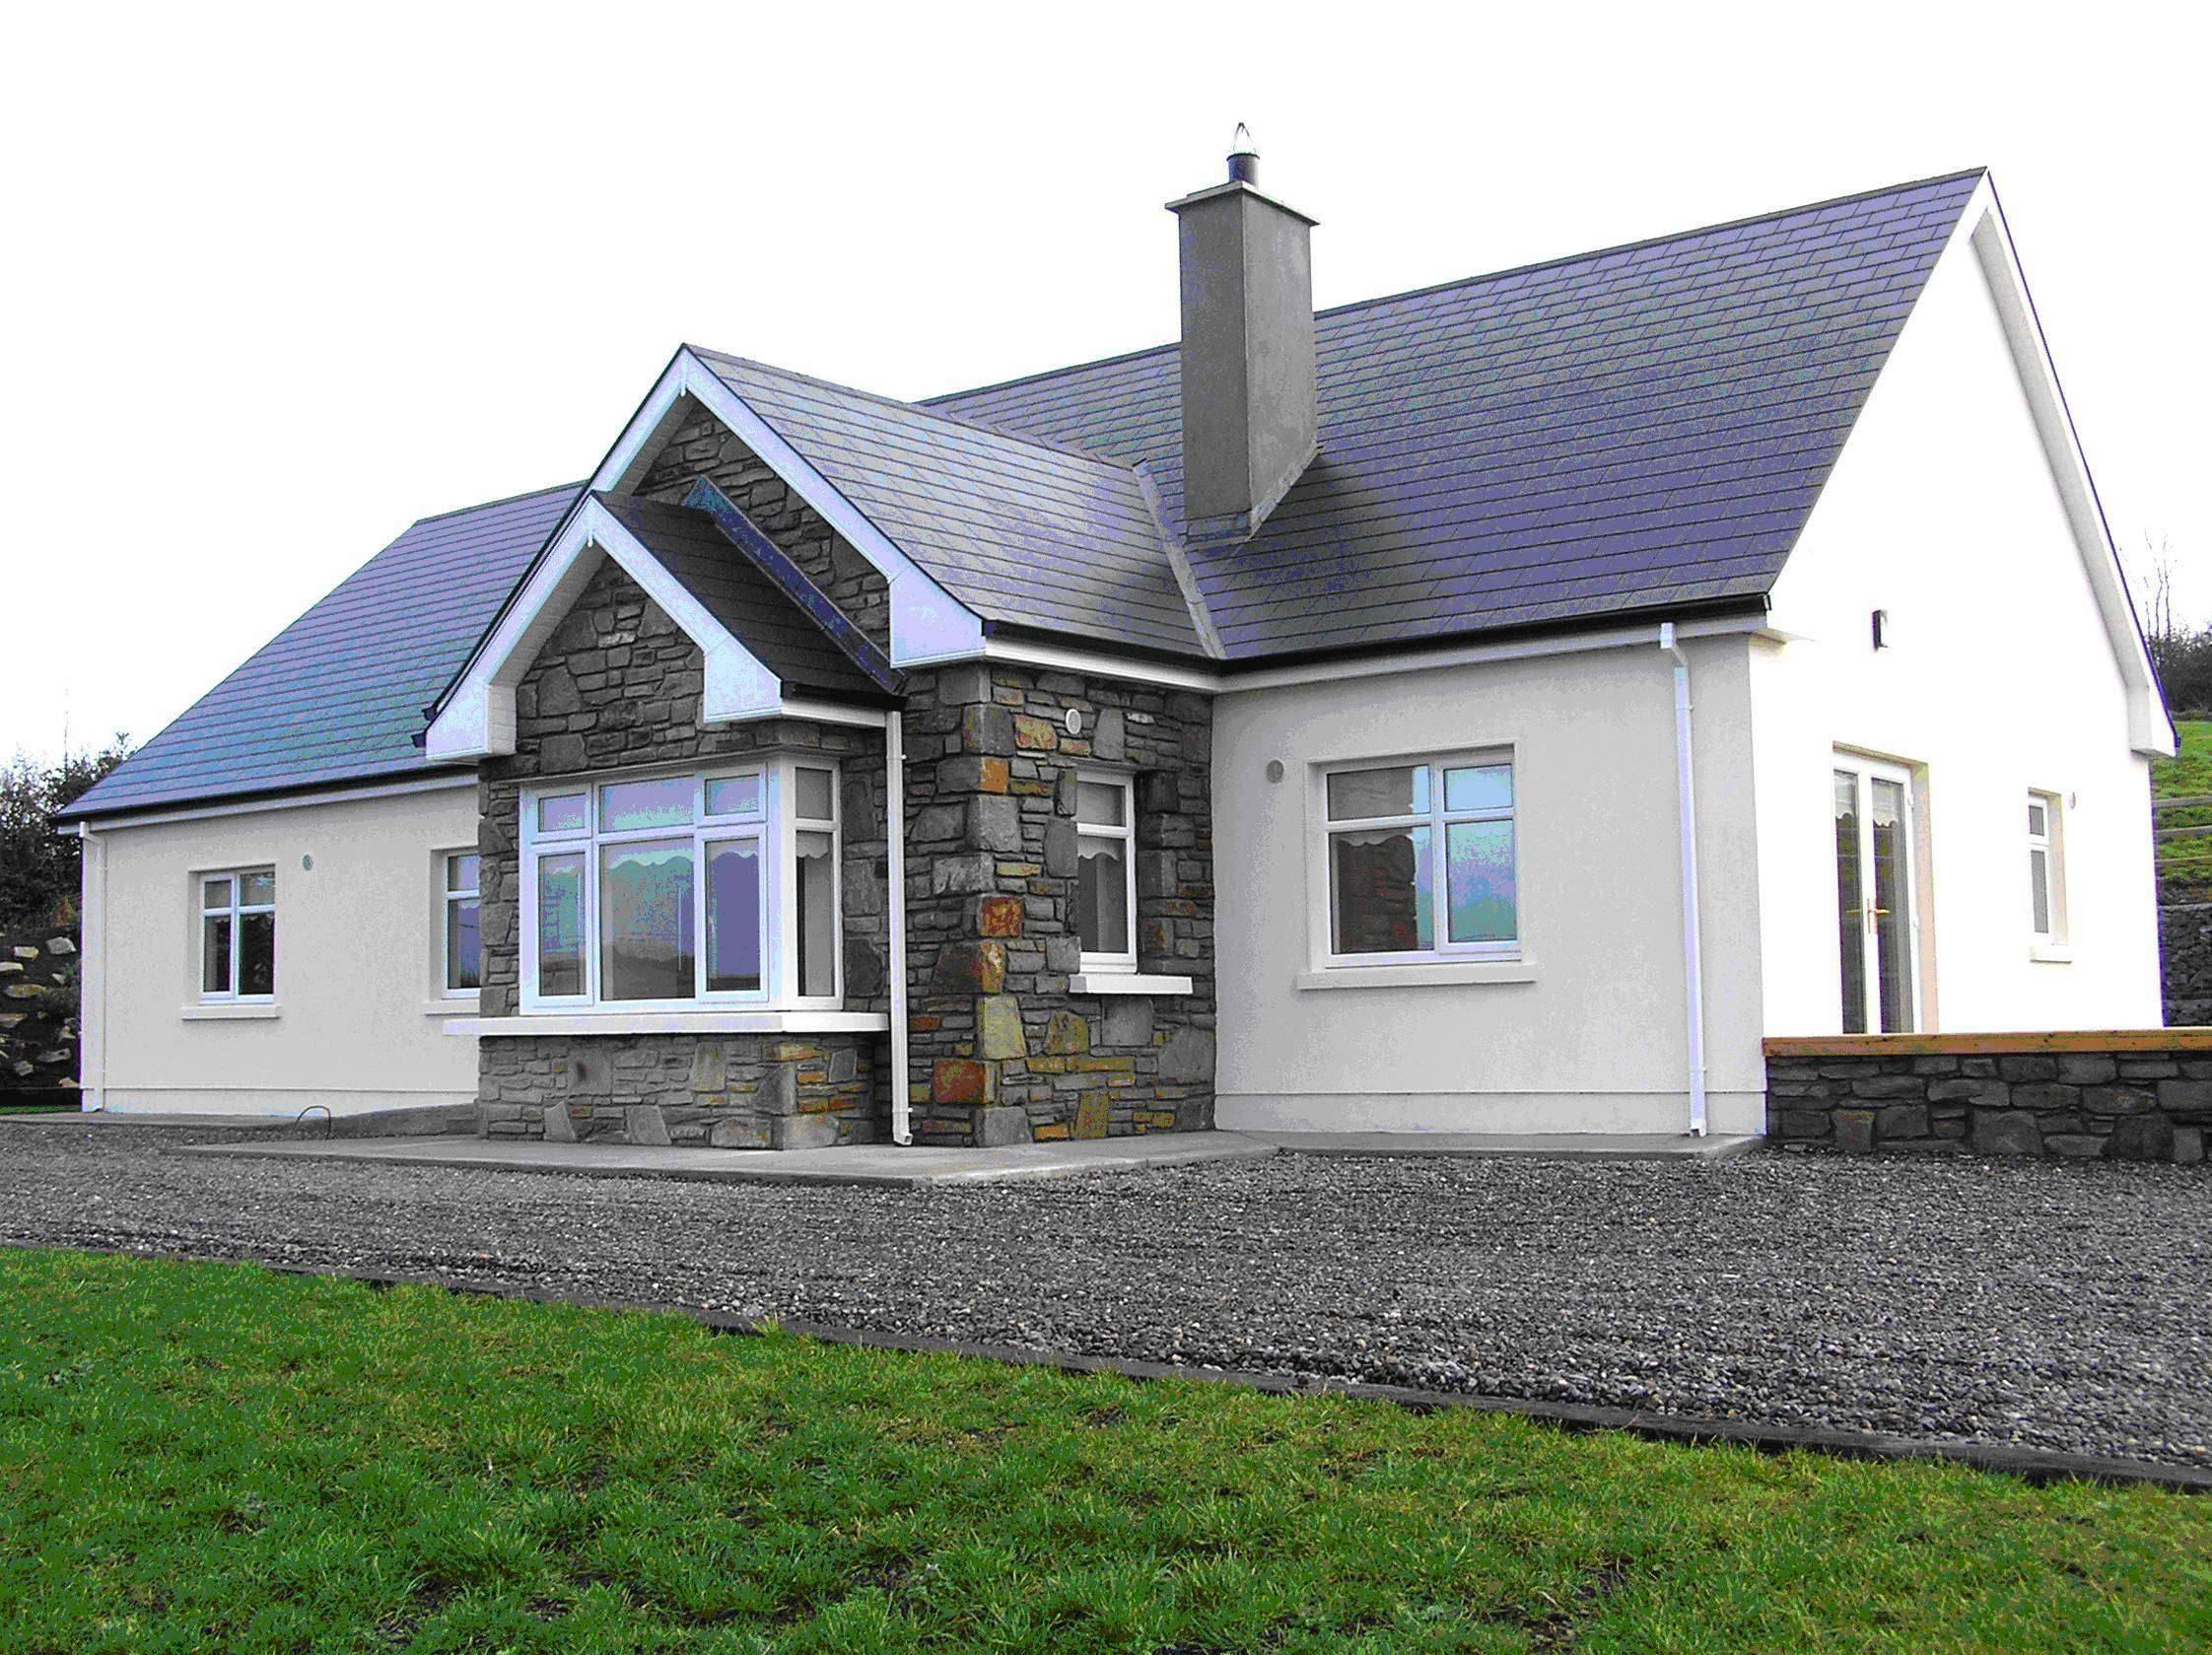 House for sale boyle roscommon ireland luxury home in for Luxury homes for sale ireland